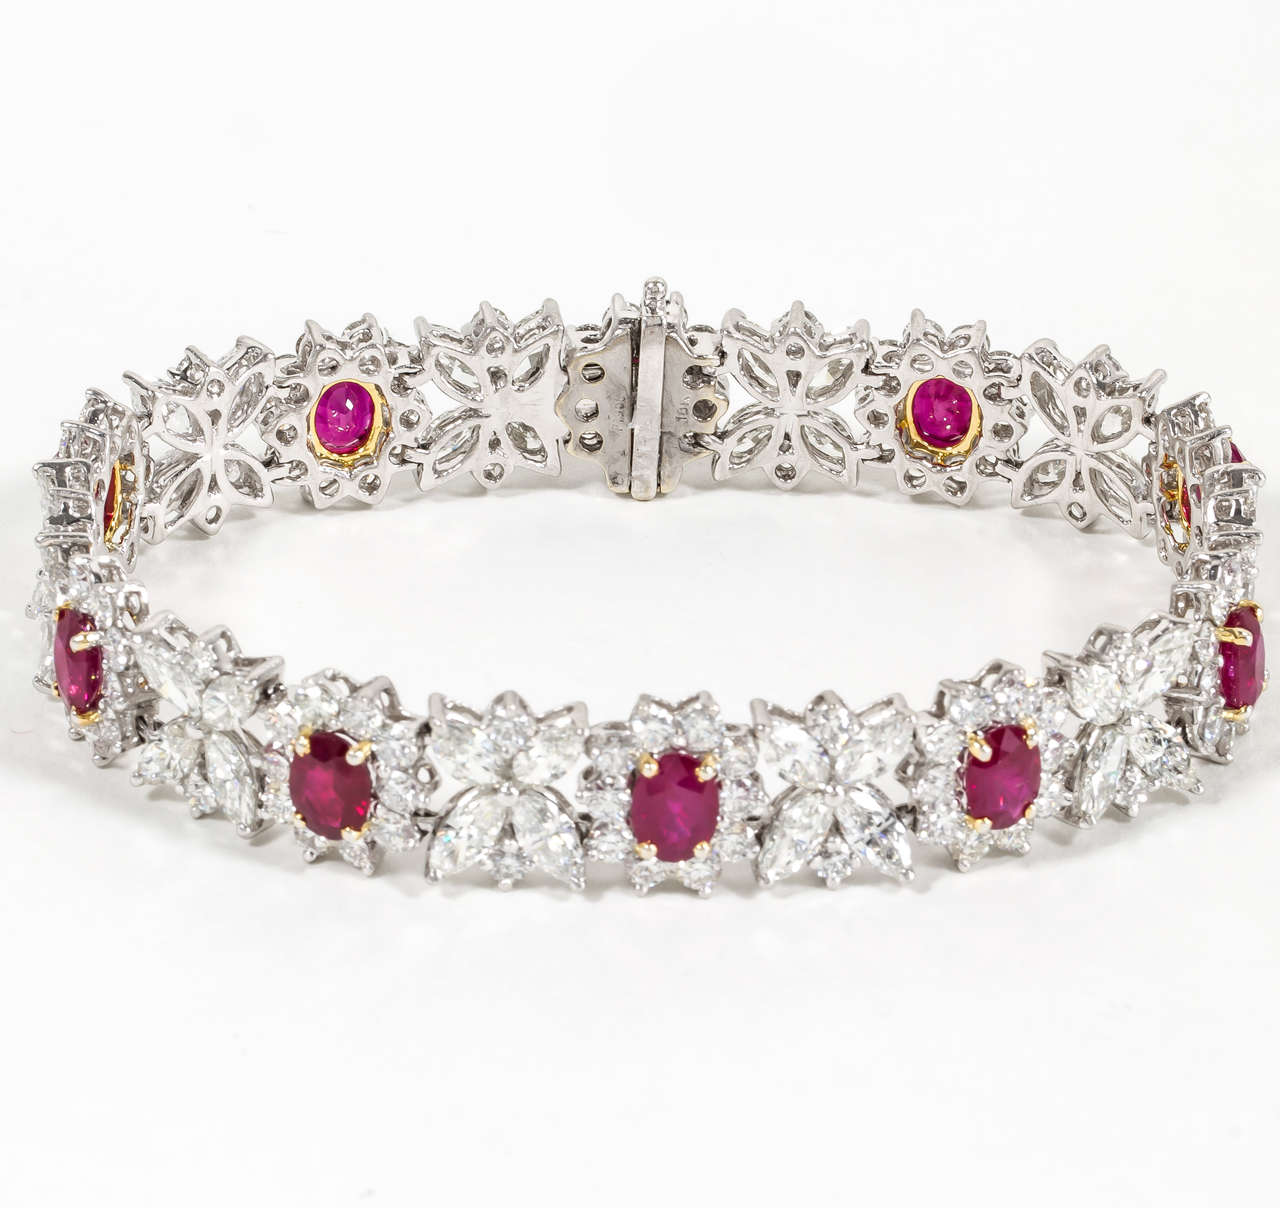 Elegant ruby and diamond bracelet set in platinum. 